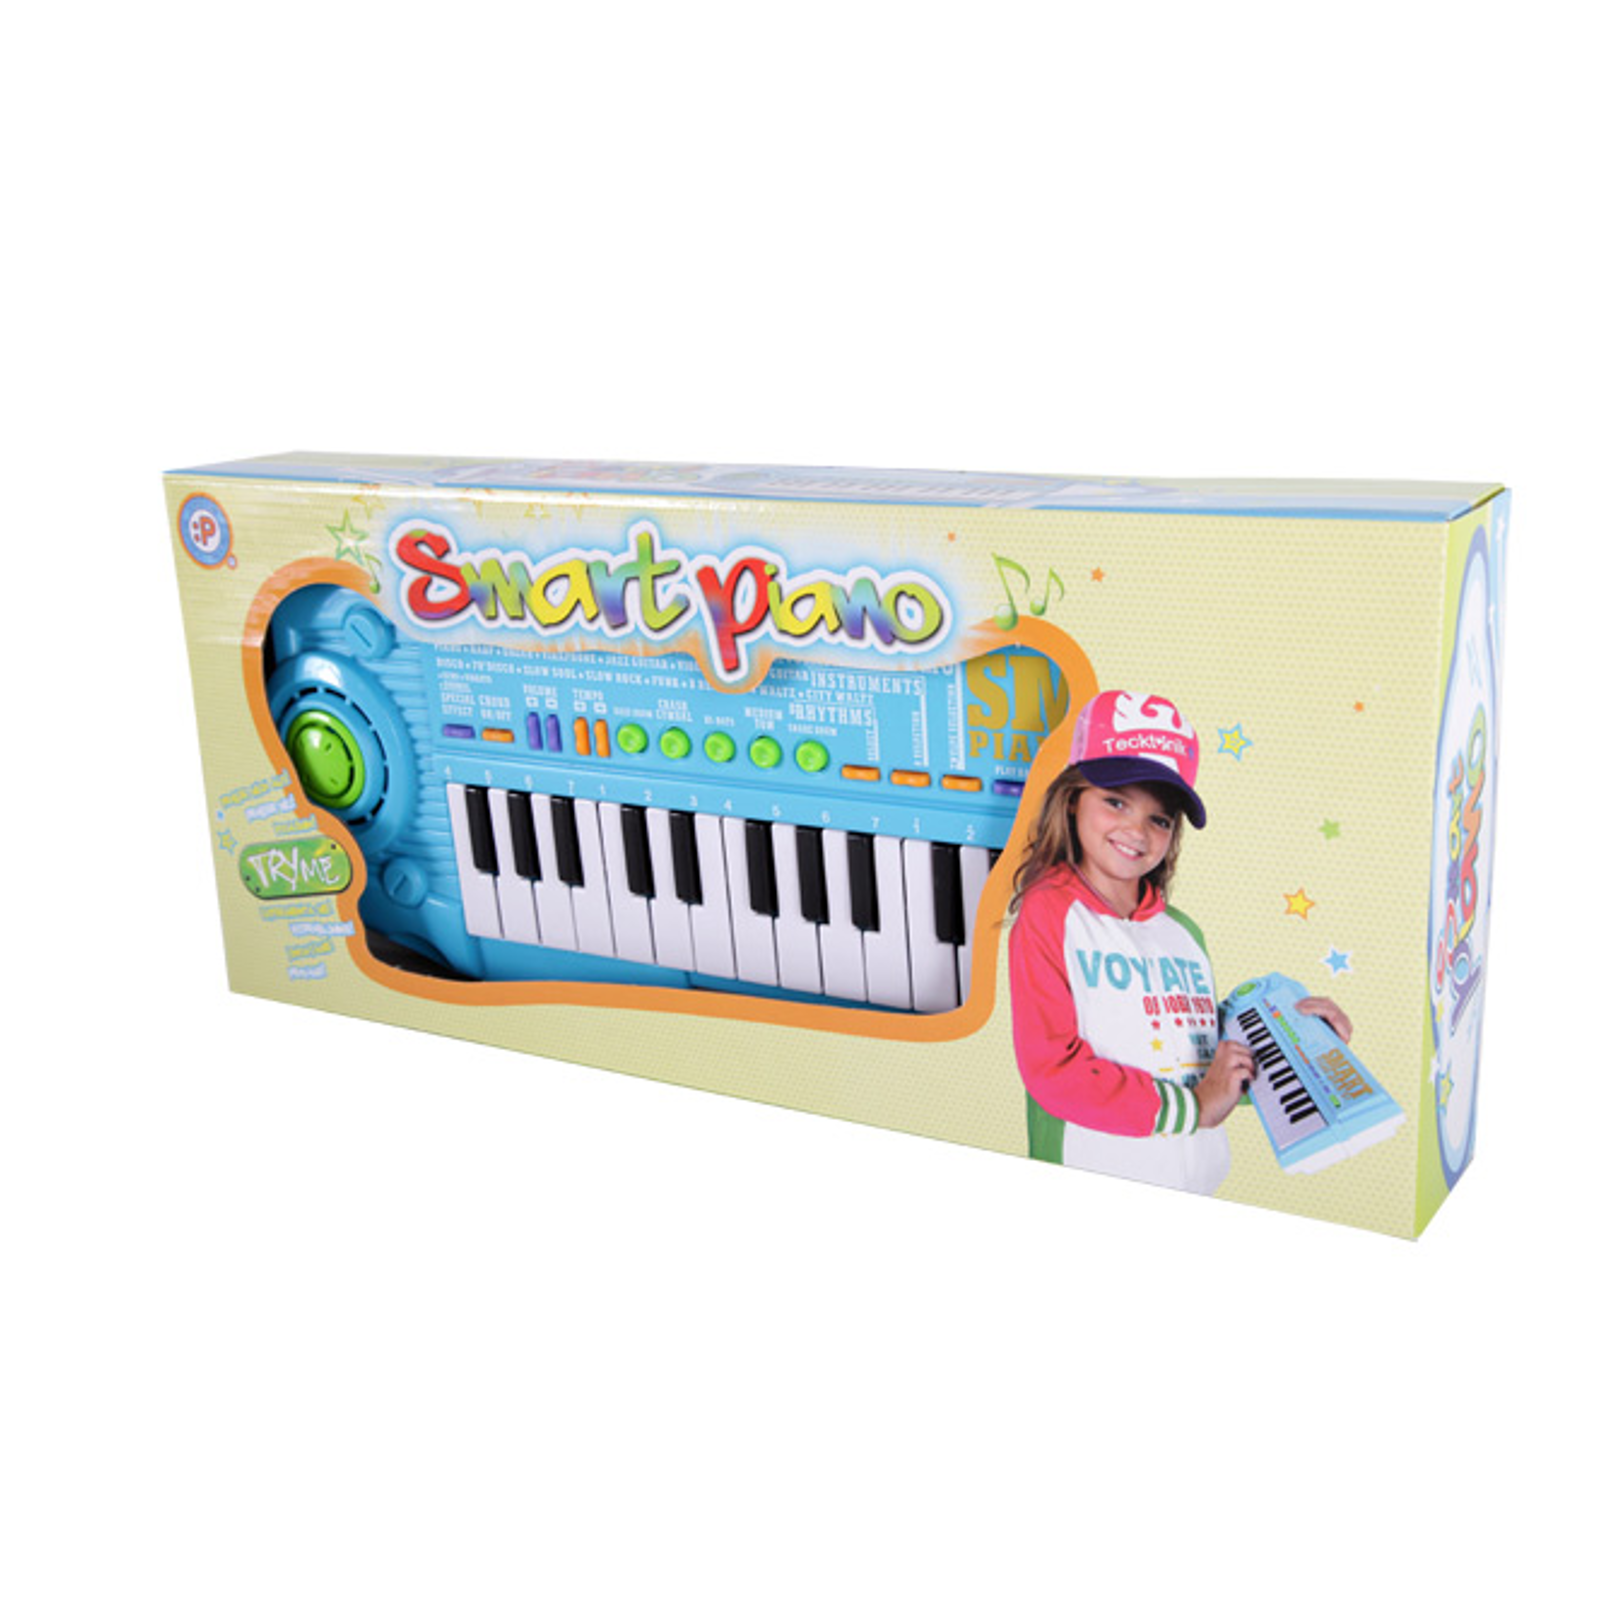 ����������� ���������� Potex ���������� Smart Piano, 32 ����.